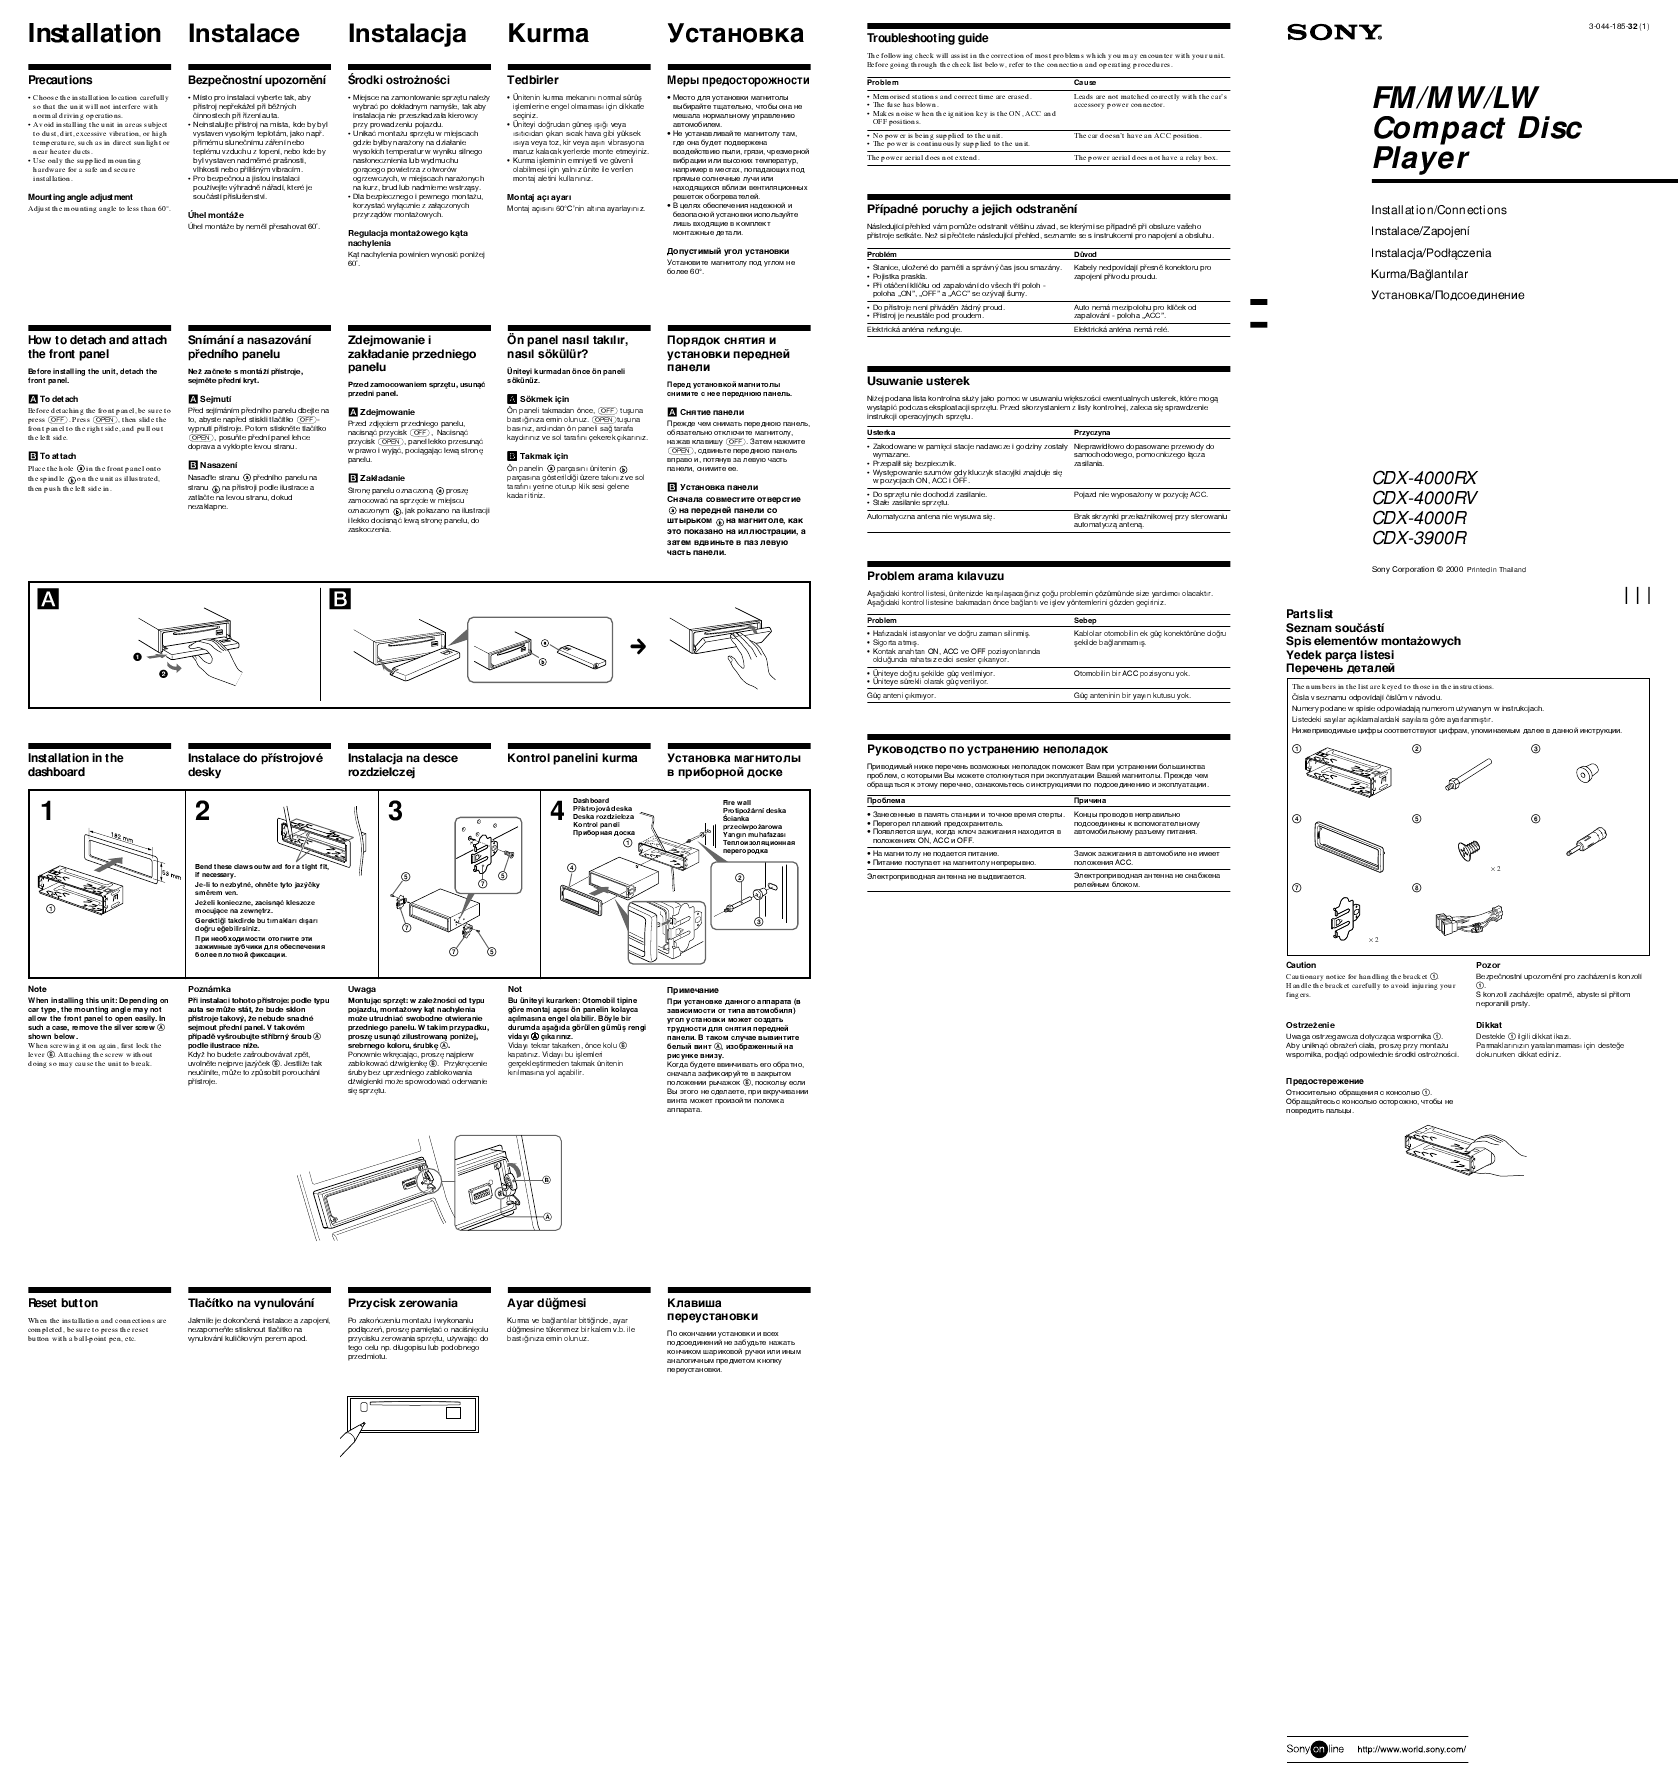 sony cdx gt65uiw wiring diagram sony image wiring sony cdx gt520 wiring diagram wiring diagrams on sony cdx gt65uiw wiring diagram